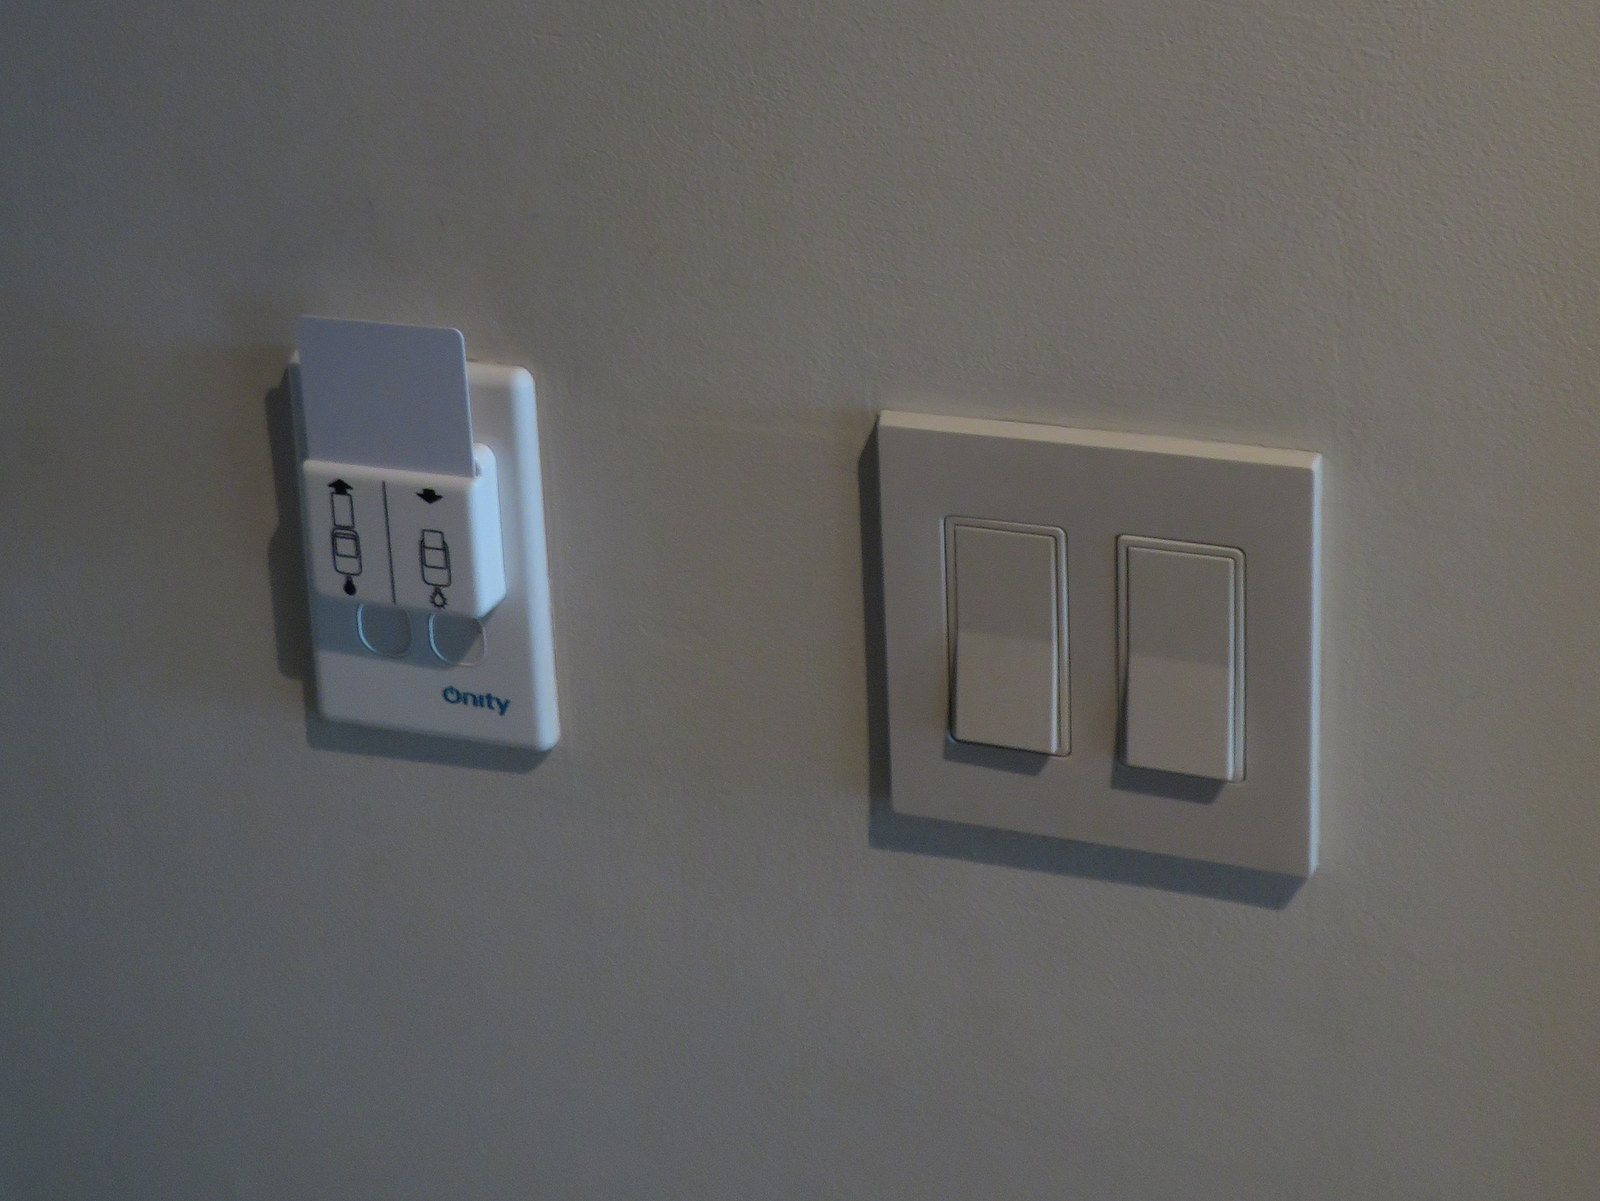 Energy Keycards Shut Down Hotel Rooms